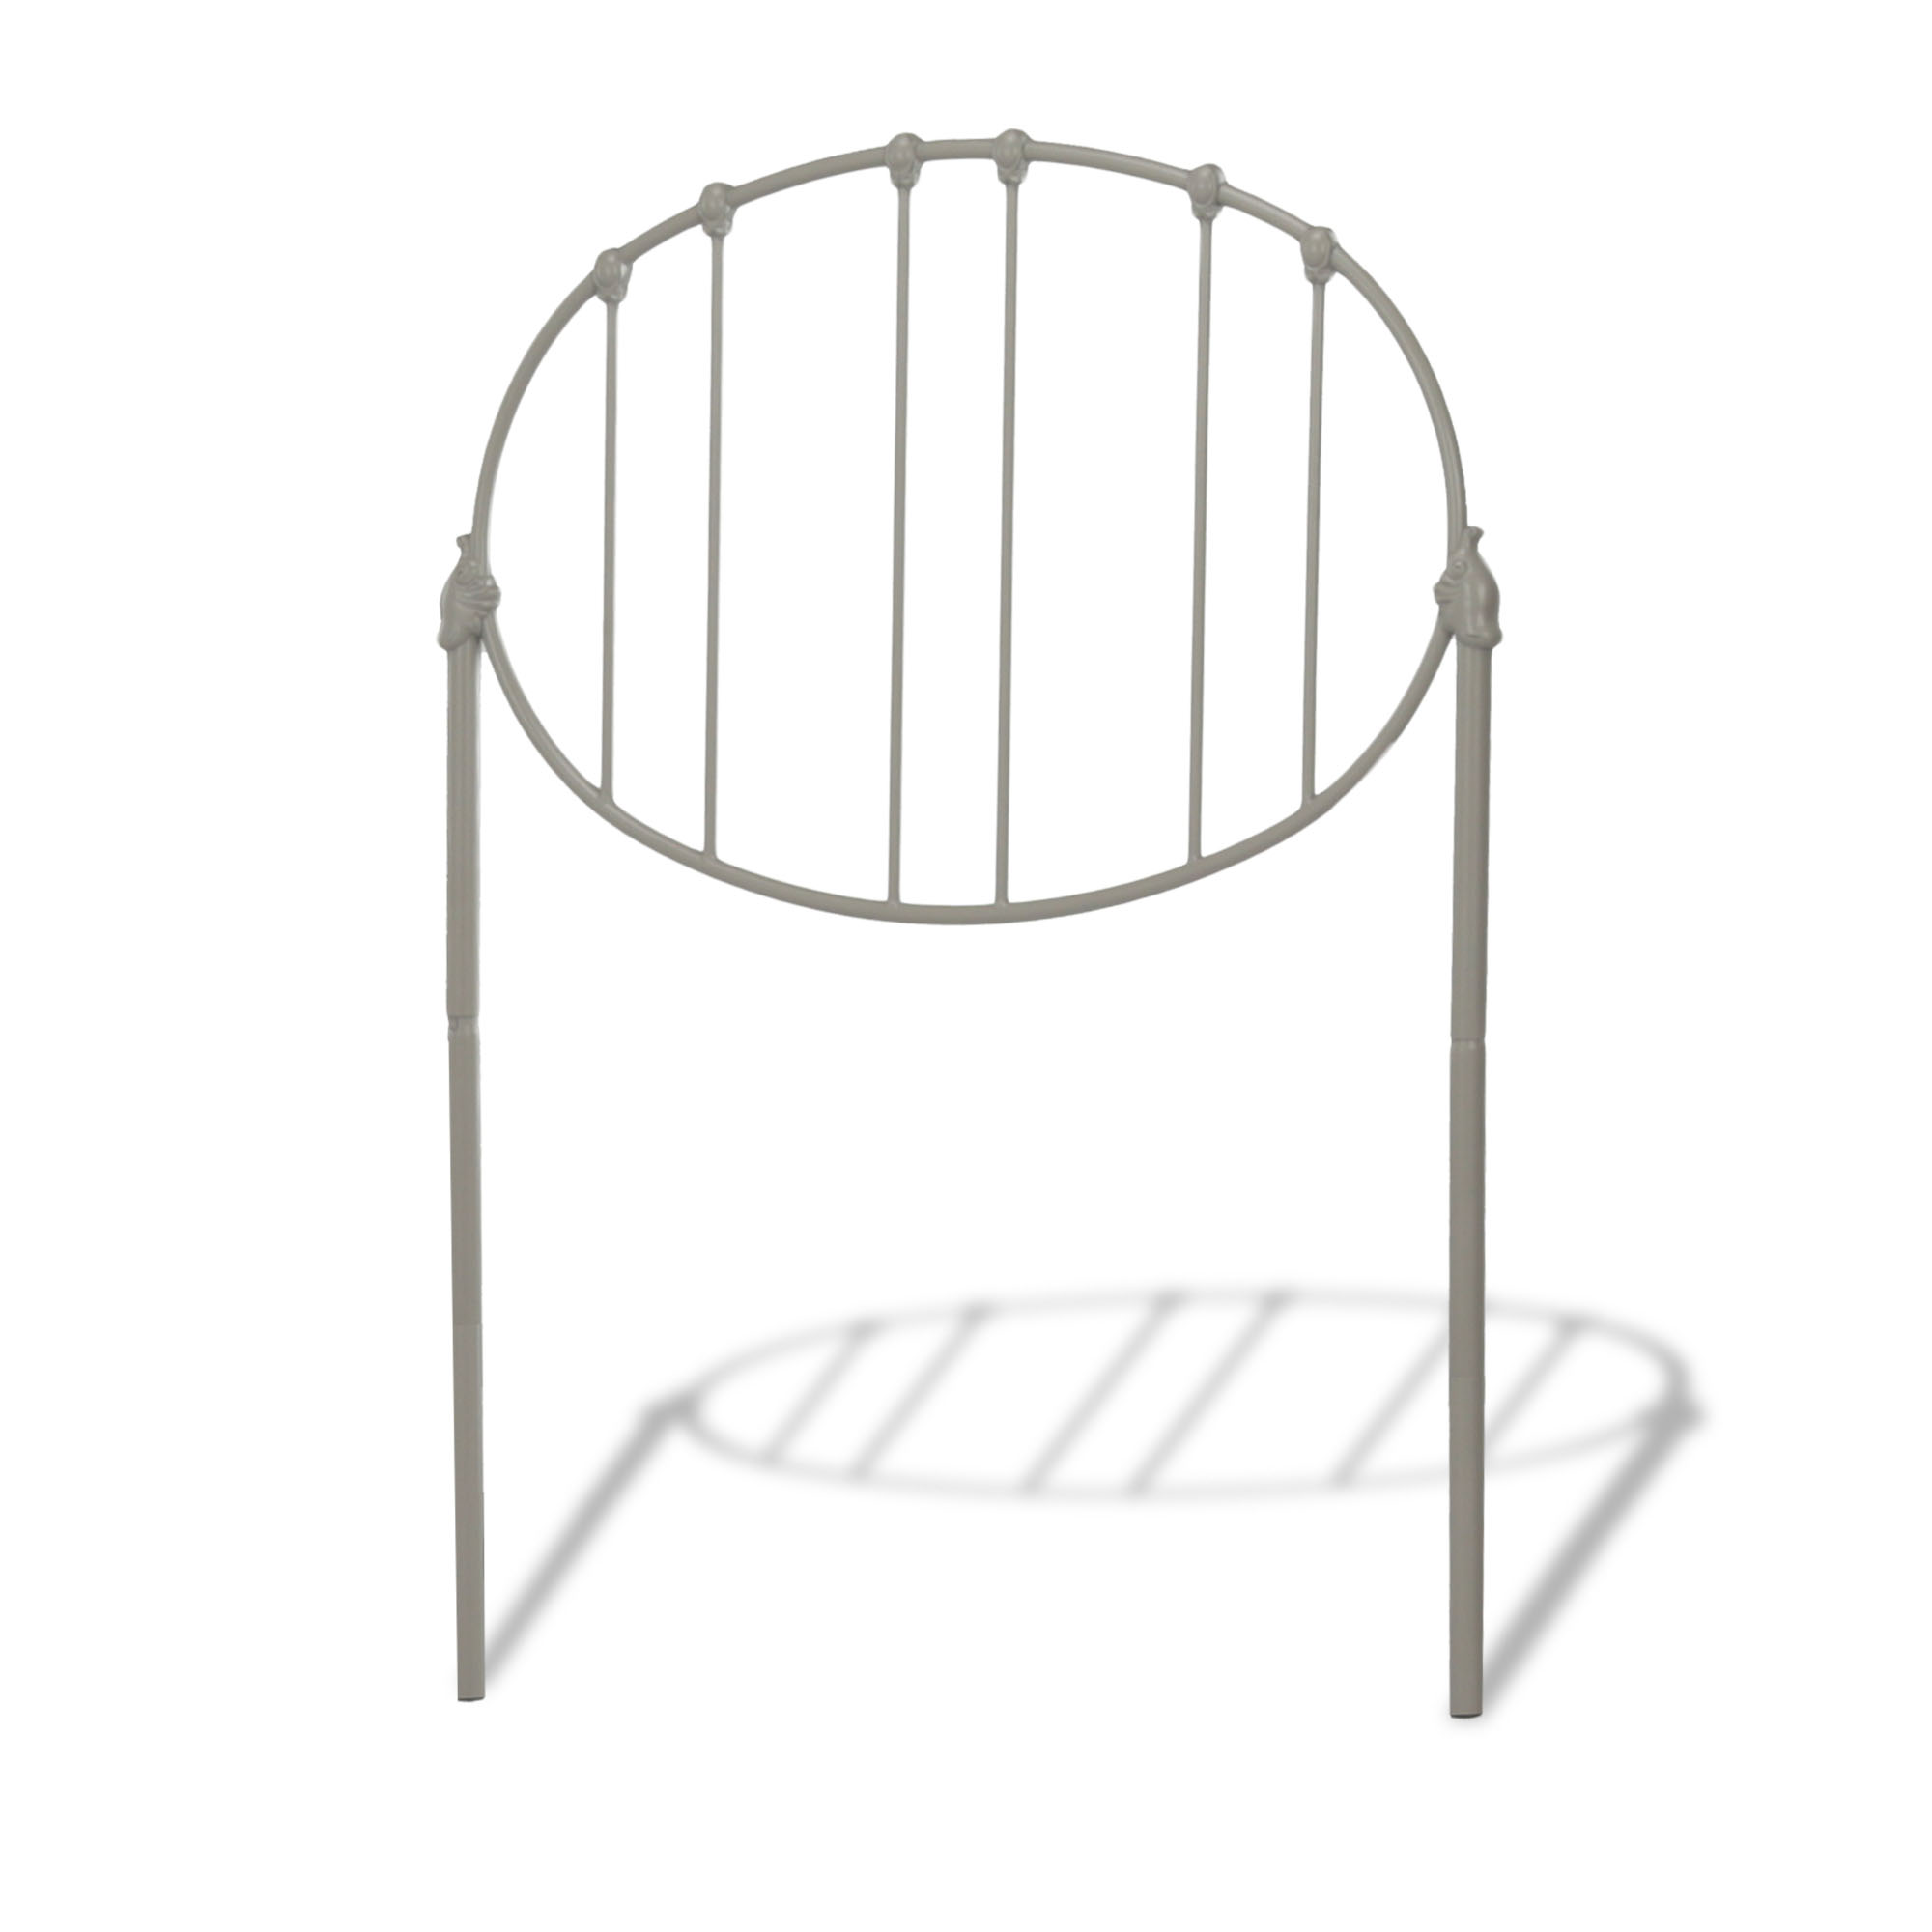 B10J33 In By Fashion Bed Group In Dickson, TN   Emory Kids Bed With Metal  Duo Panels And Oval Shape Design, Grey Finish, Twin